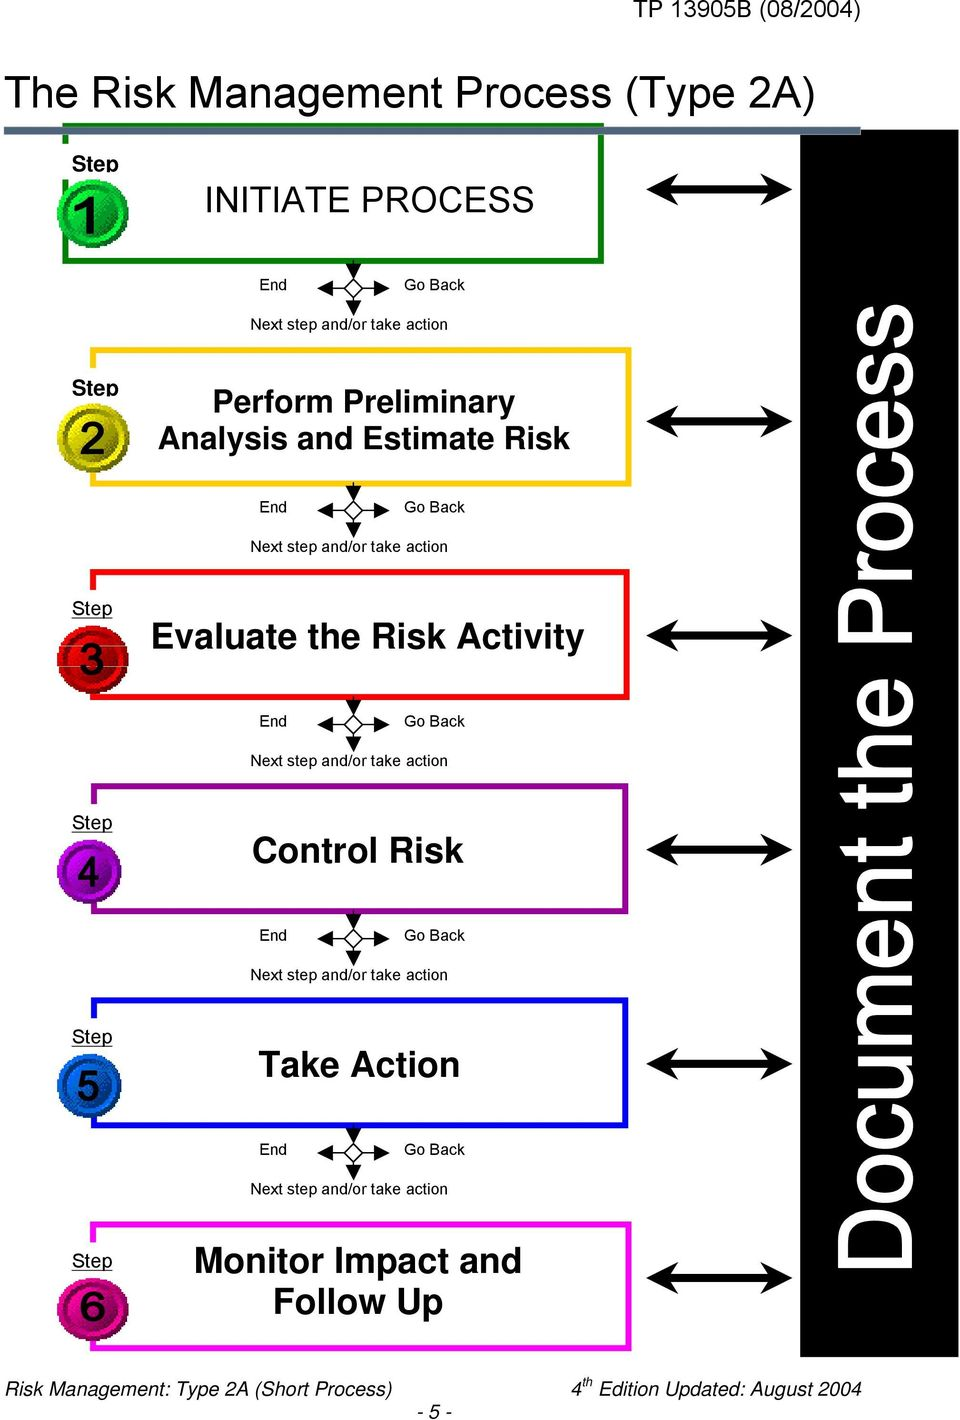 Back Next step and/or take action Step Control Risk End Go Back Next step and/or take action Step Take Action End Go Back Next